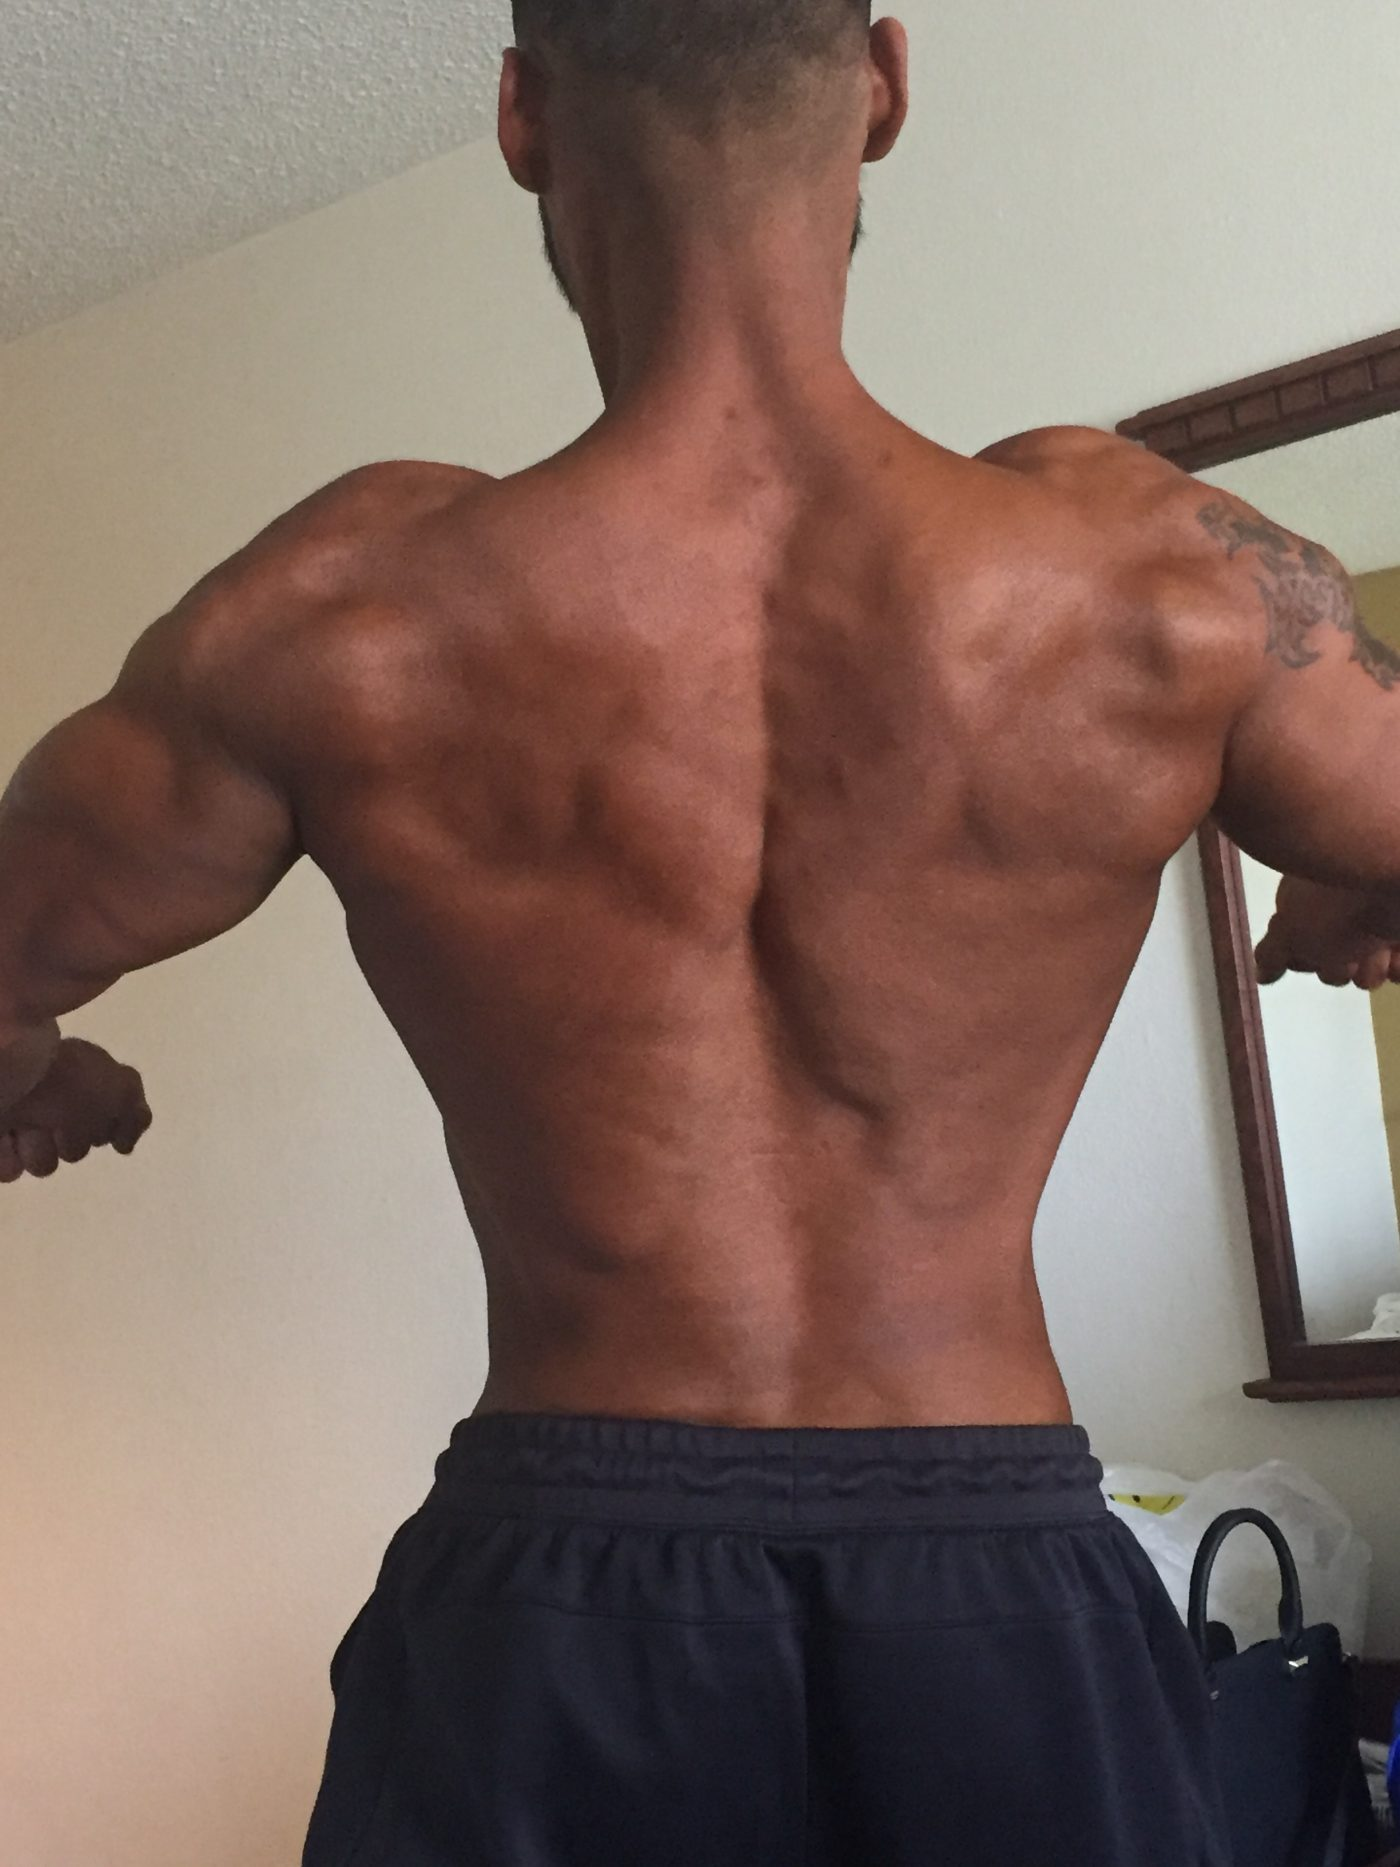 Diego showing off his back in his hotel room